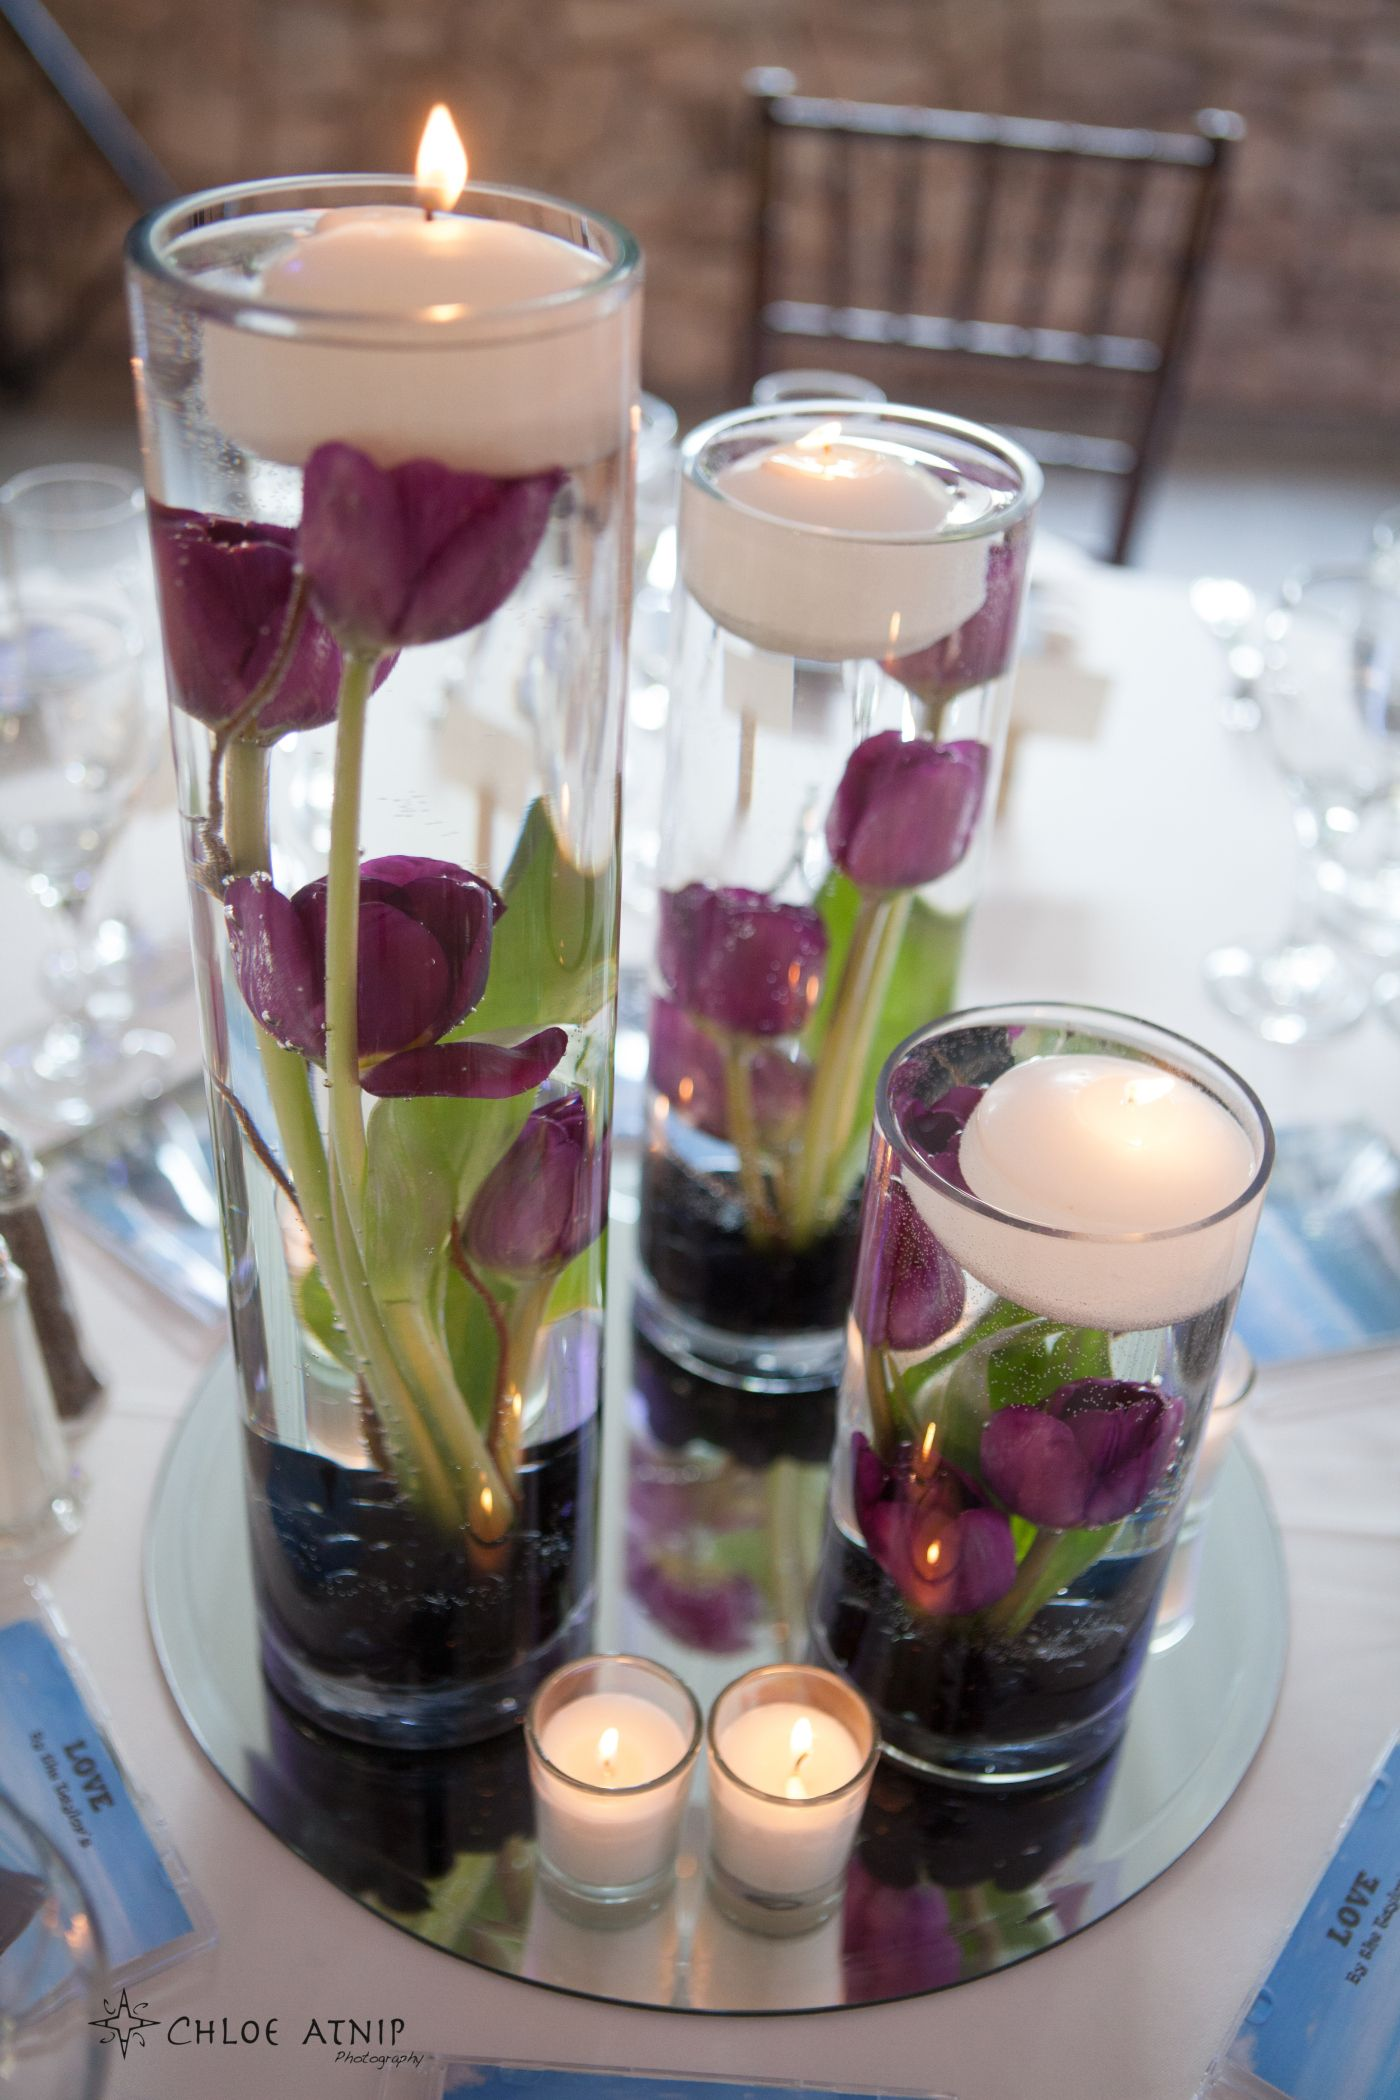 Peachy Submerged Tulips With Floating Candle Use Two Medium Size Download Free Architecture Designs Intelgarnamadebymaigaardcom